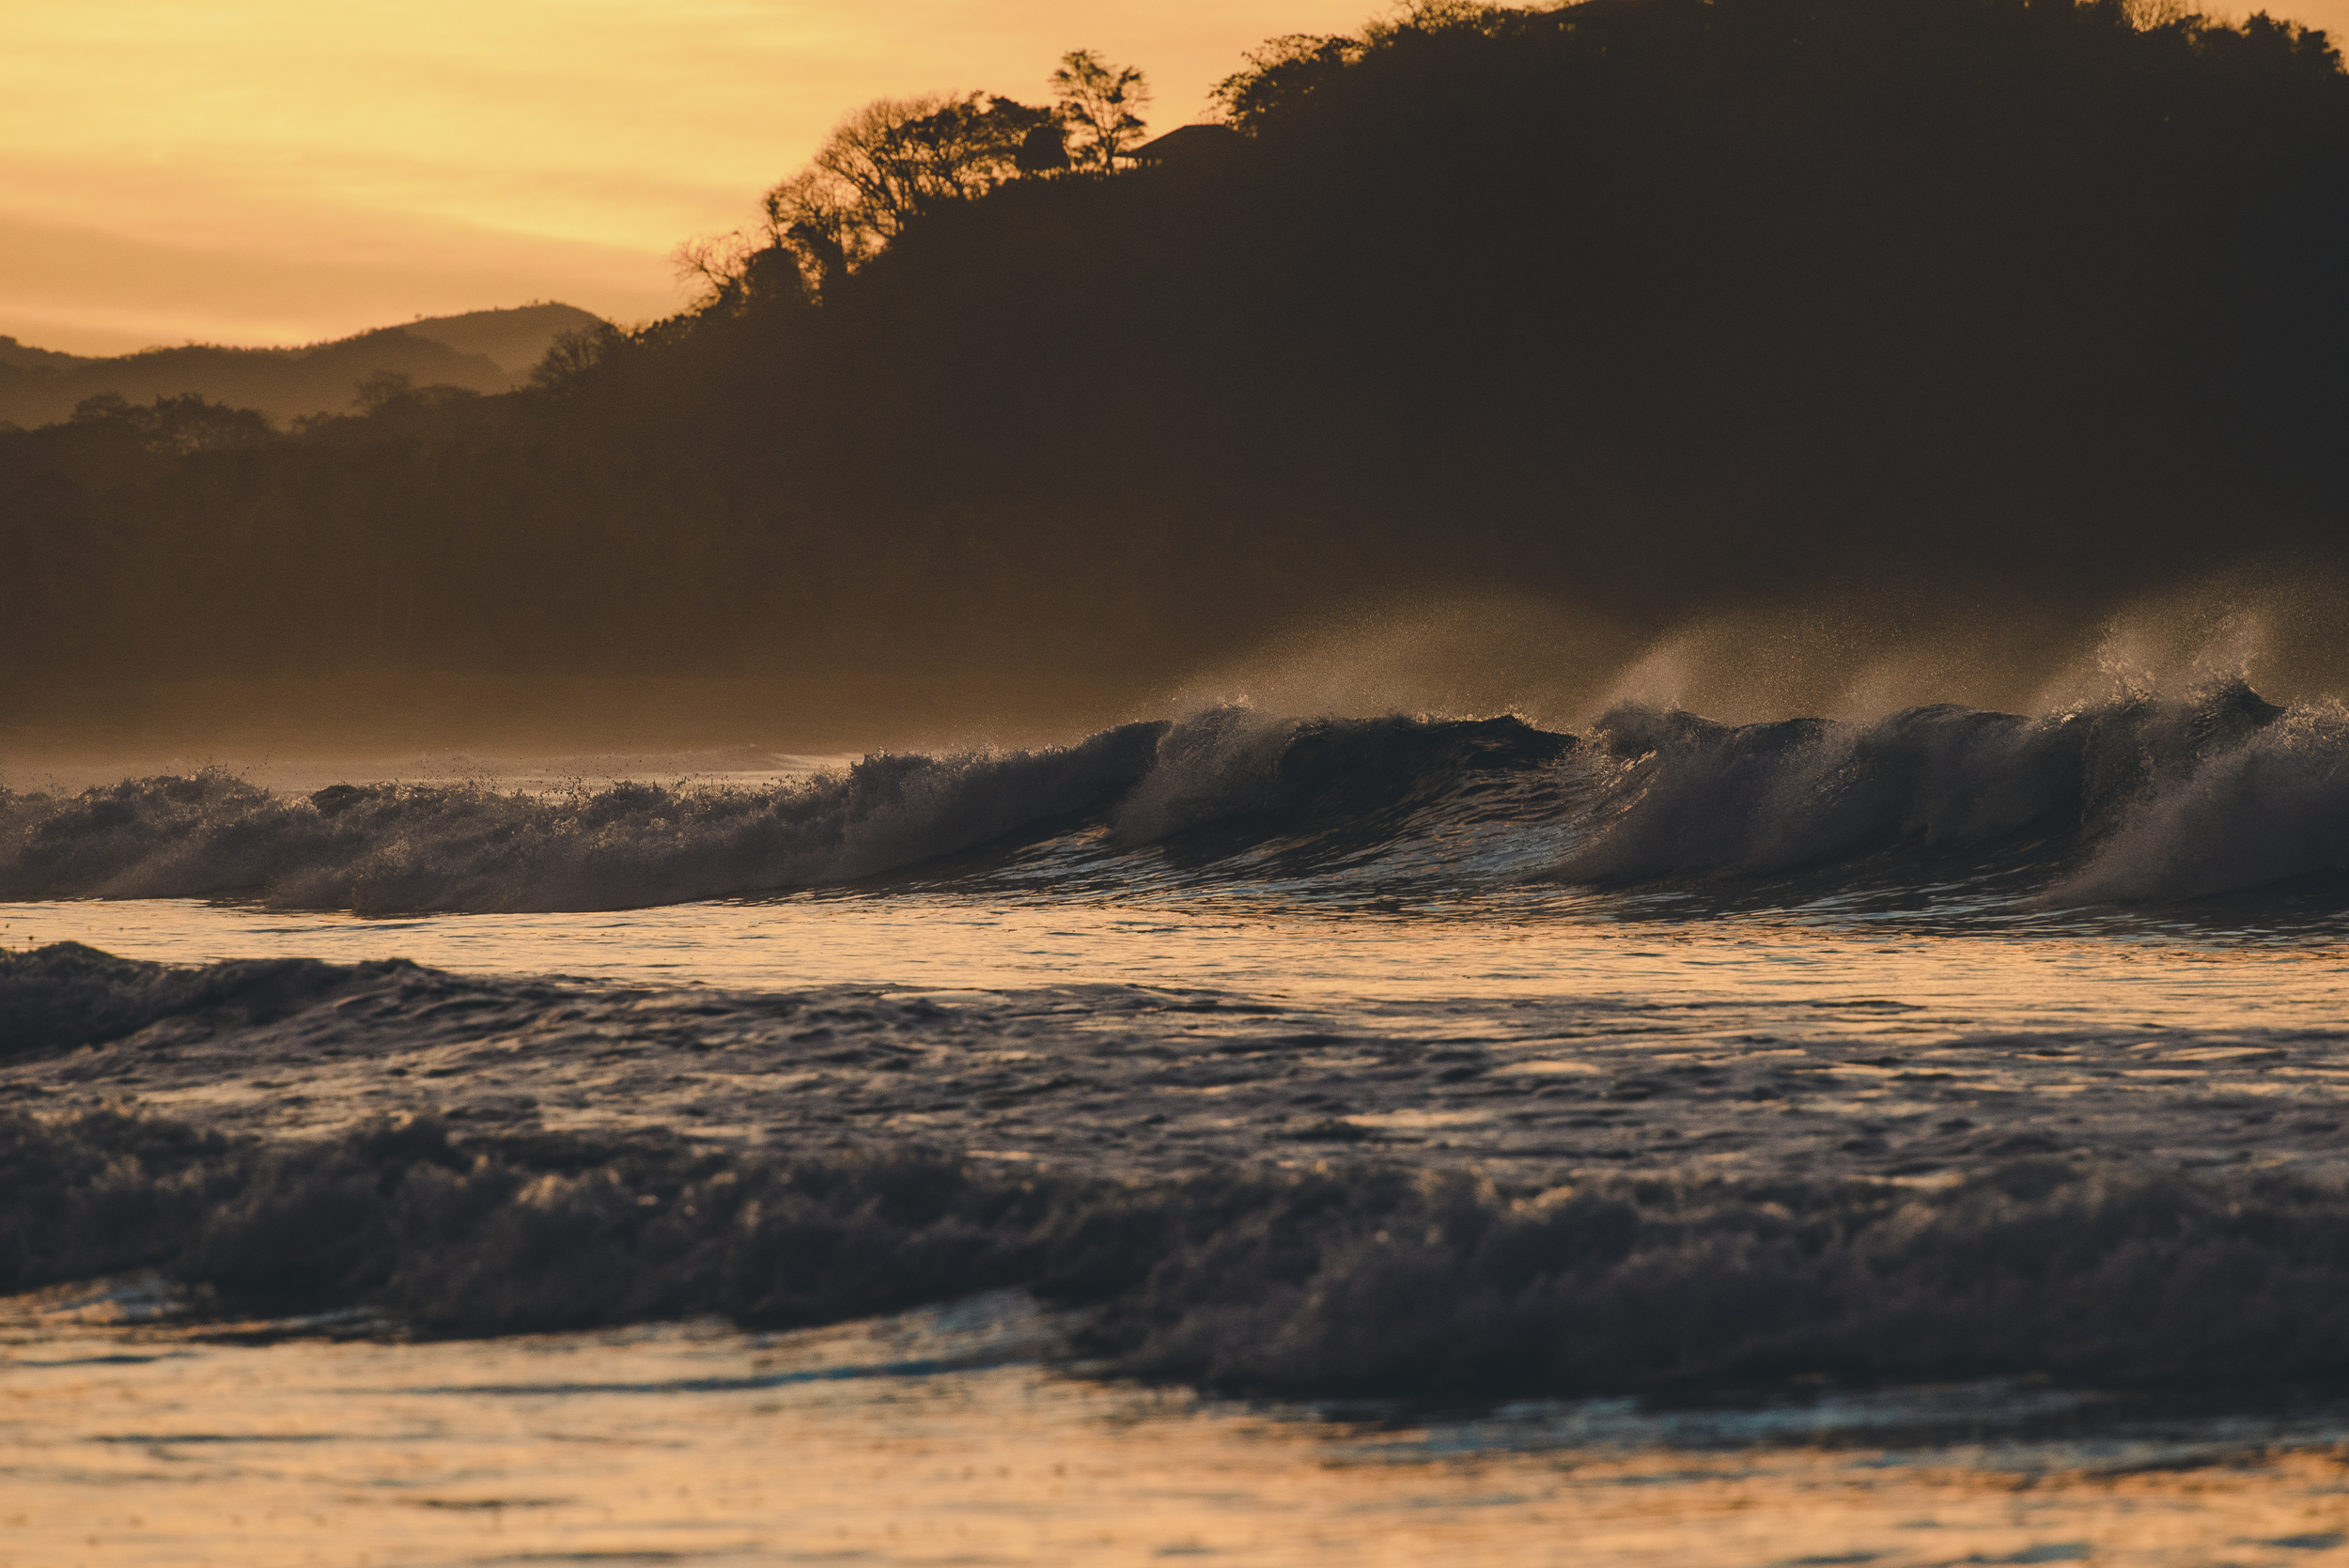 Waves in Costa Rica